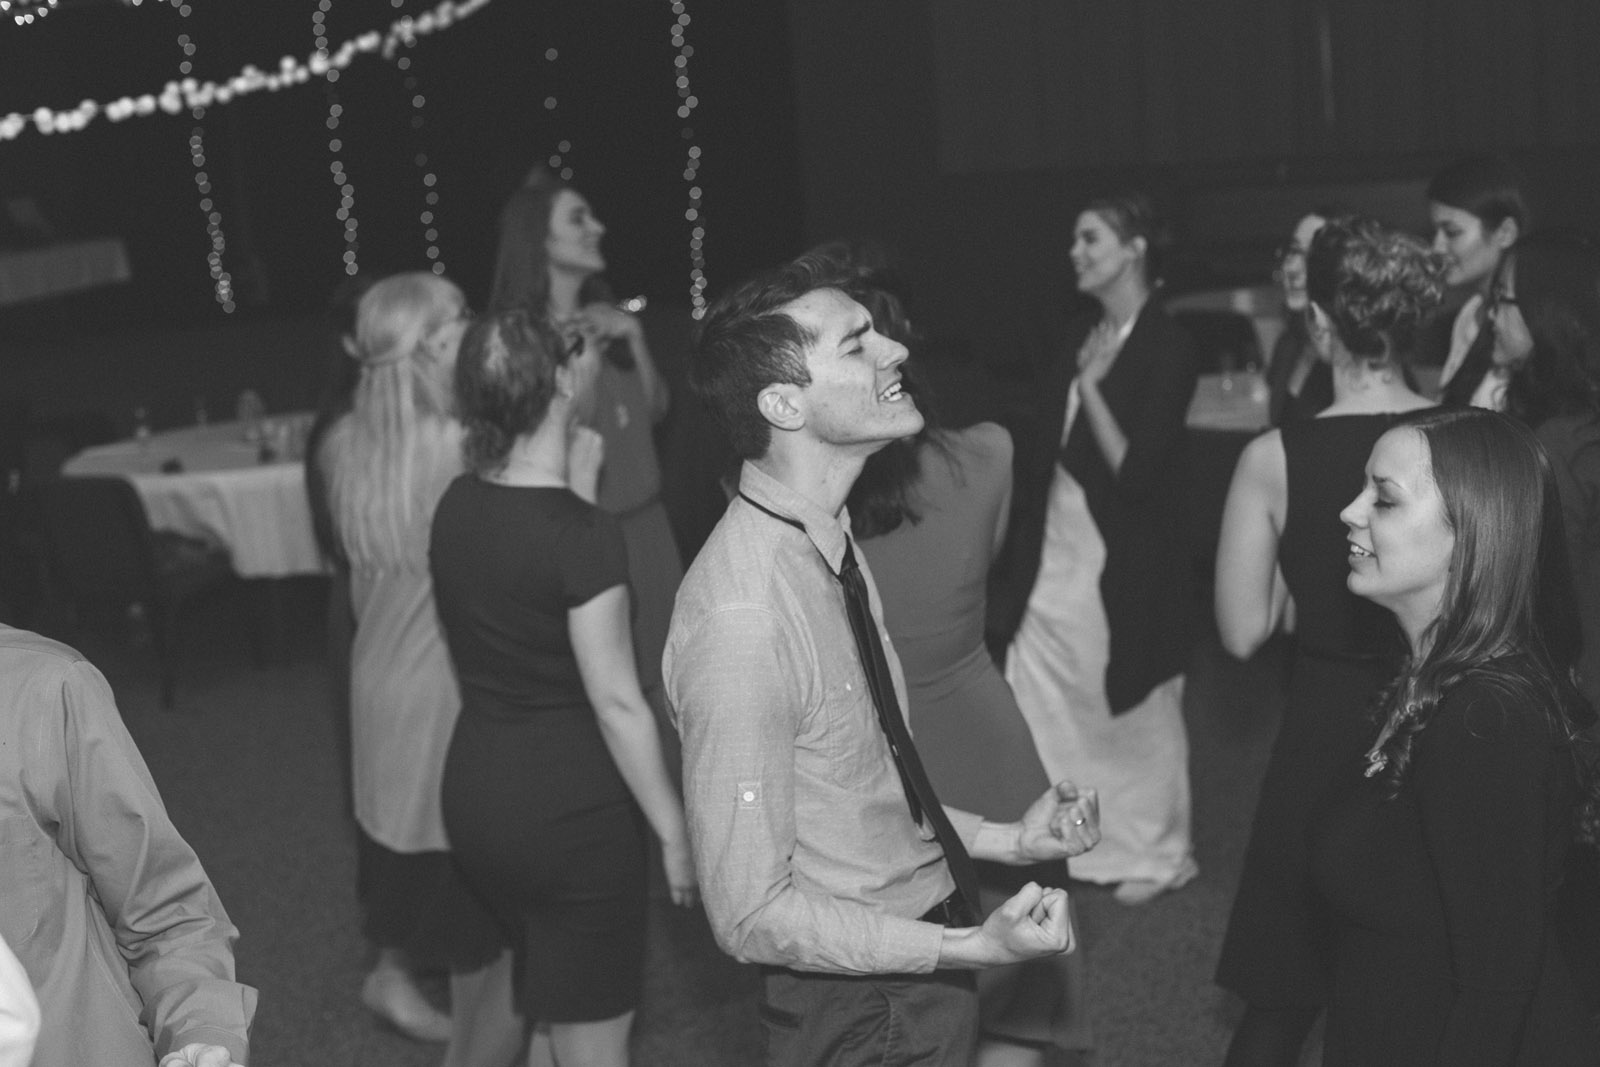 165-nm-reception-dance-taken-during-the-fun-and-joy